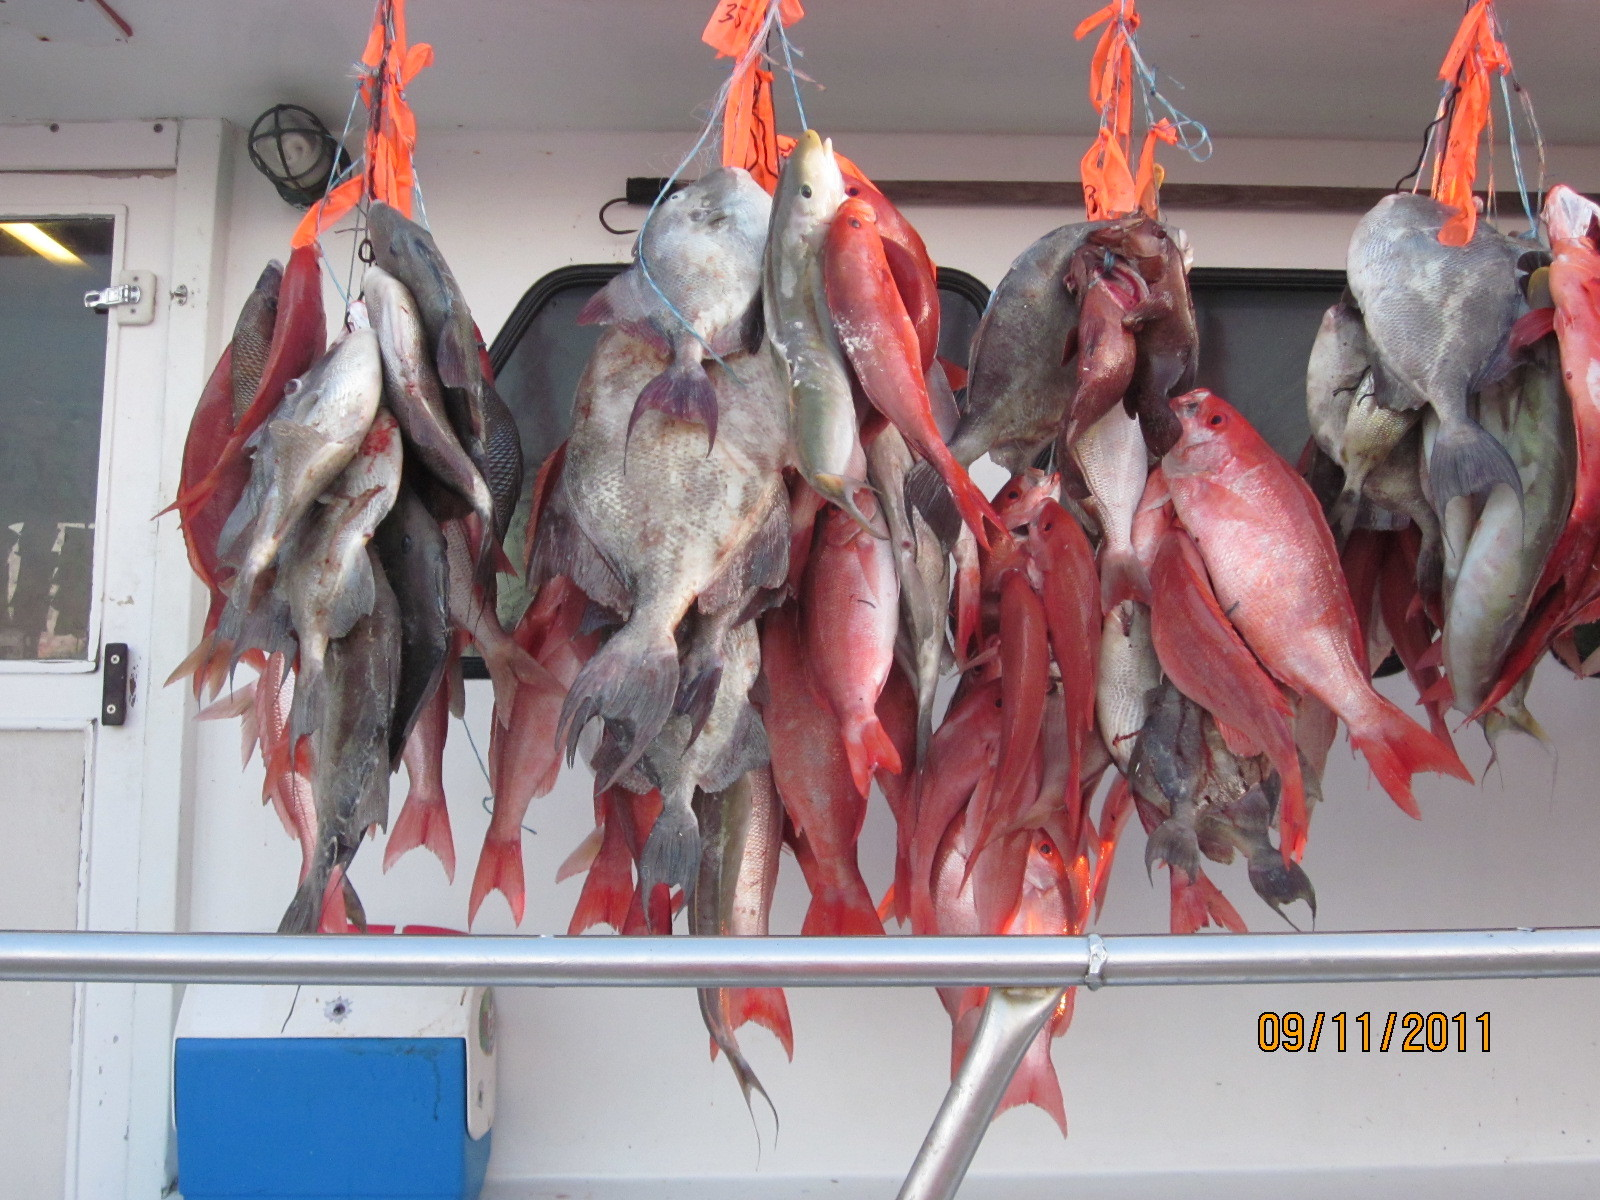 Capt Stacy Fishing Charters: Full Day Fishing